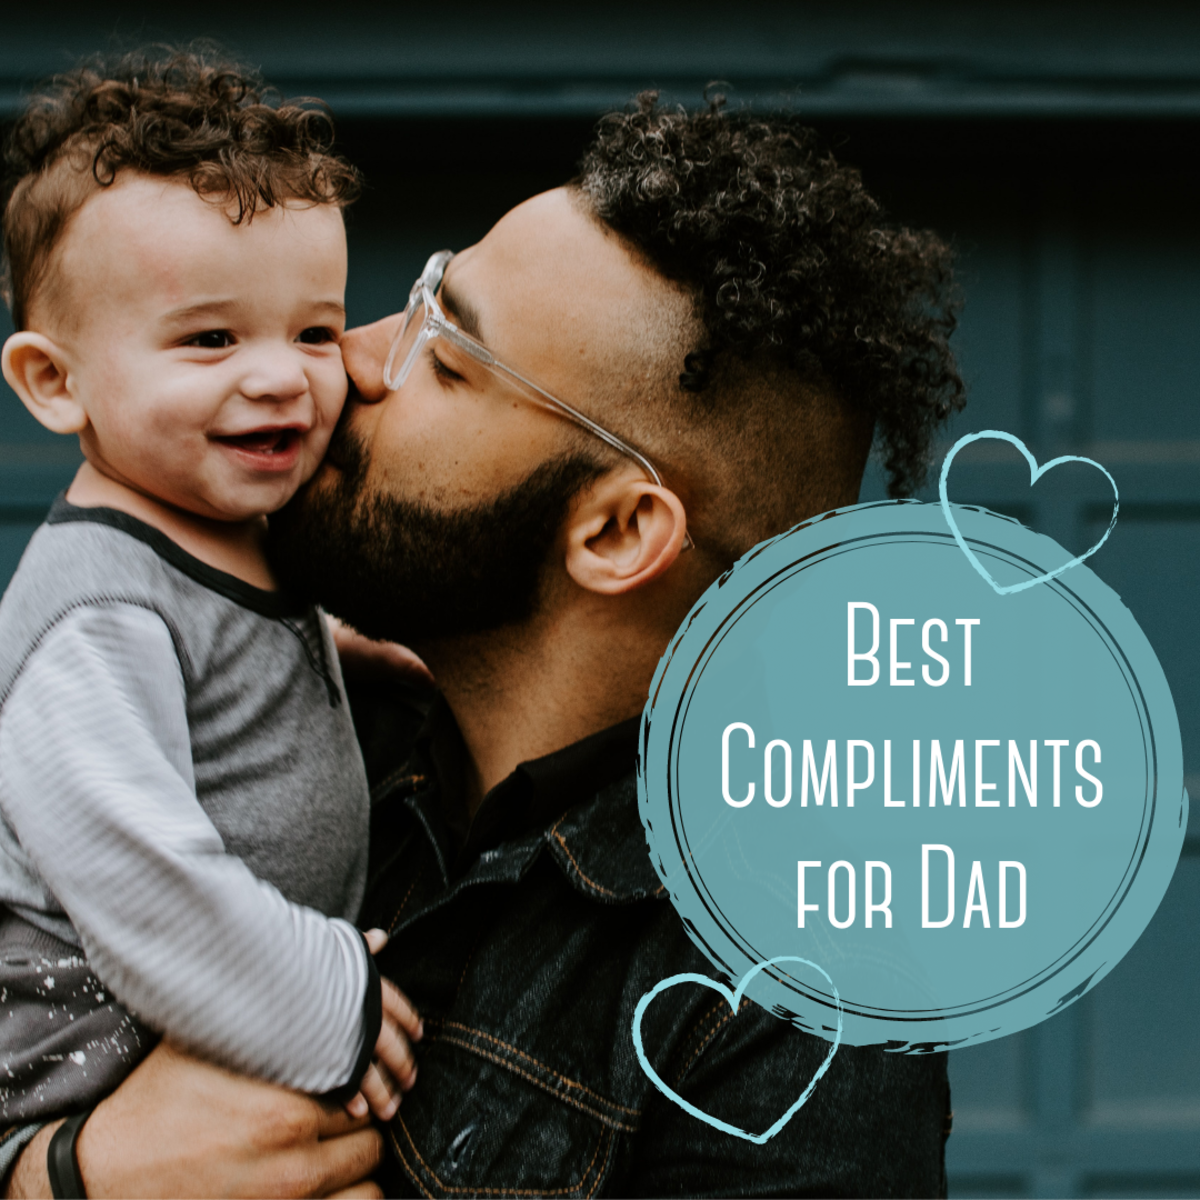 Find tons of ideas for compliments you can give to your father. Show him how much you love him with these cute, sweet, and thoughtful sayings.